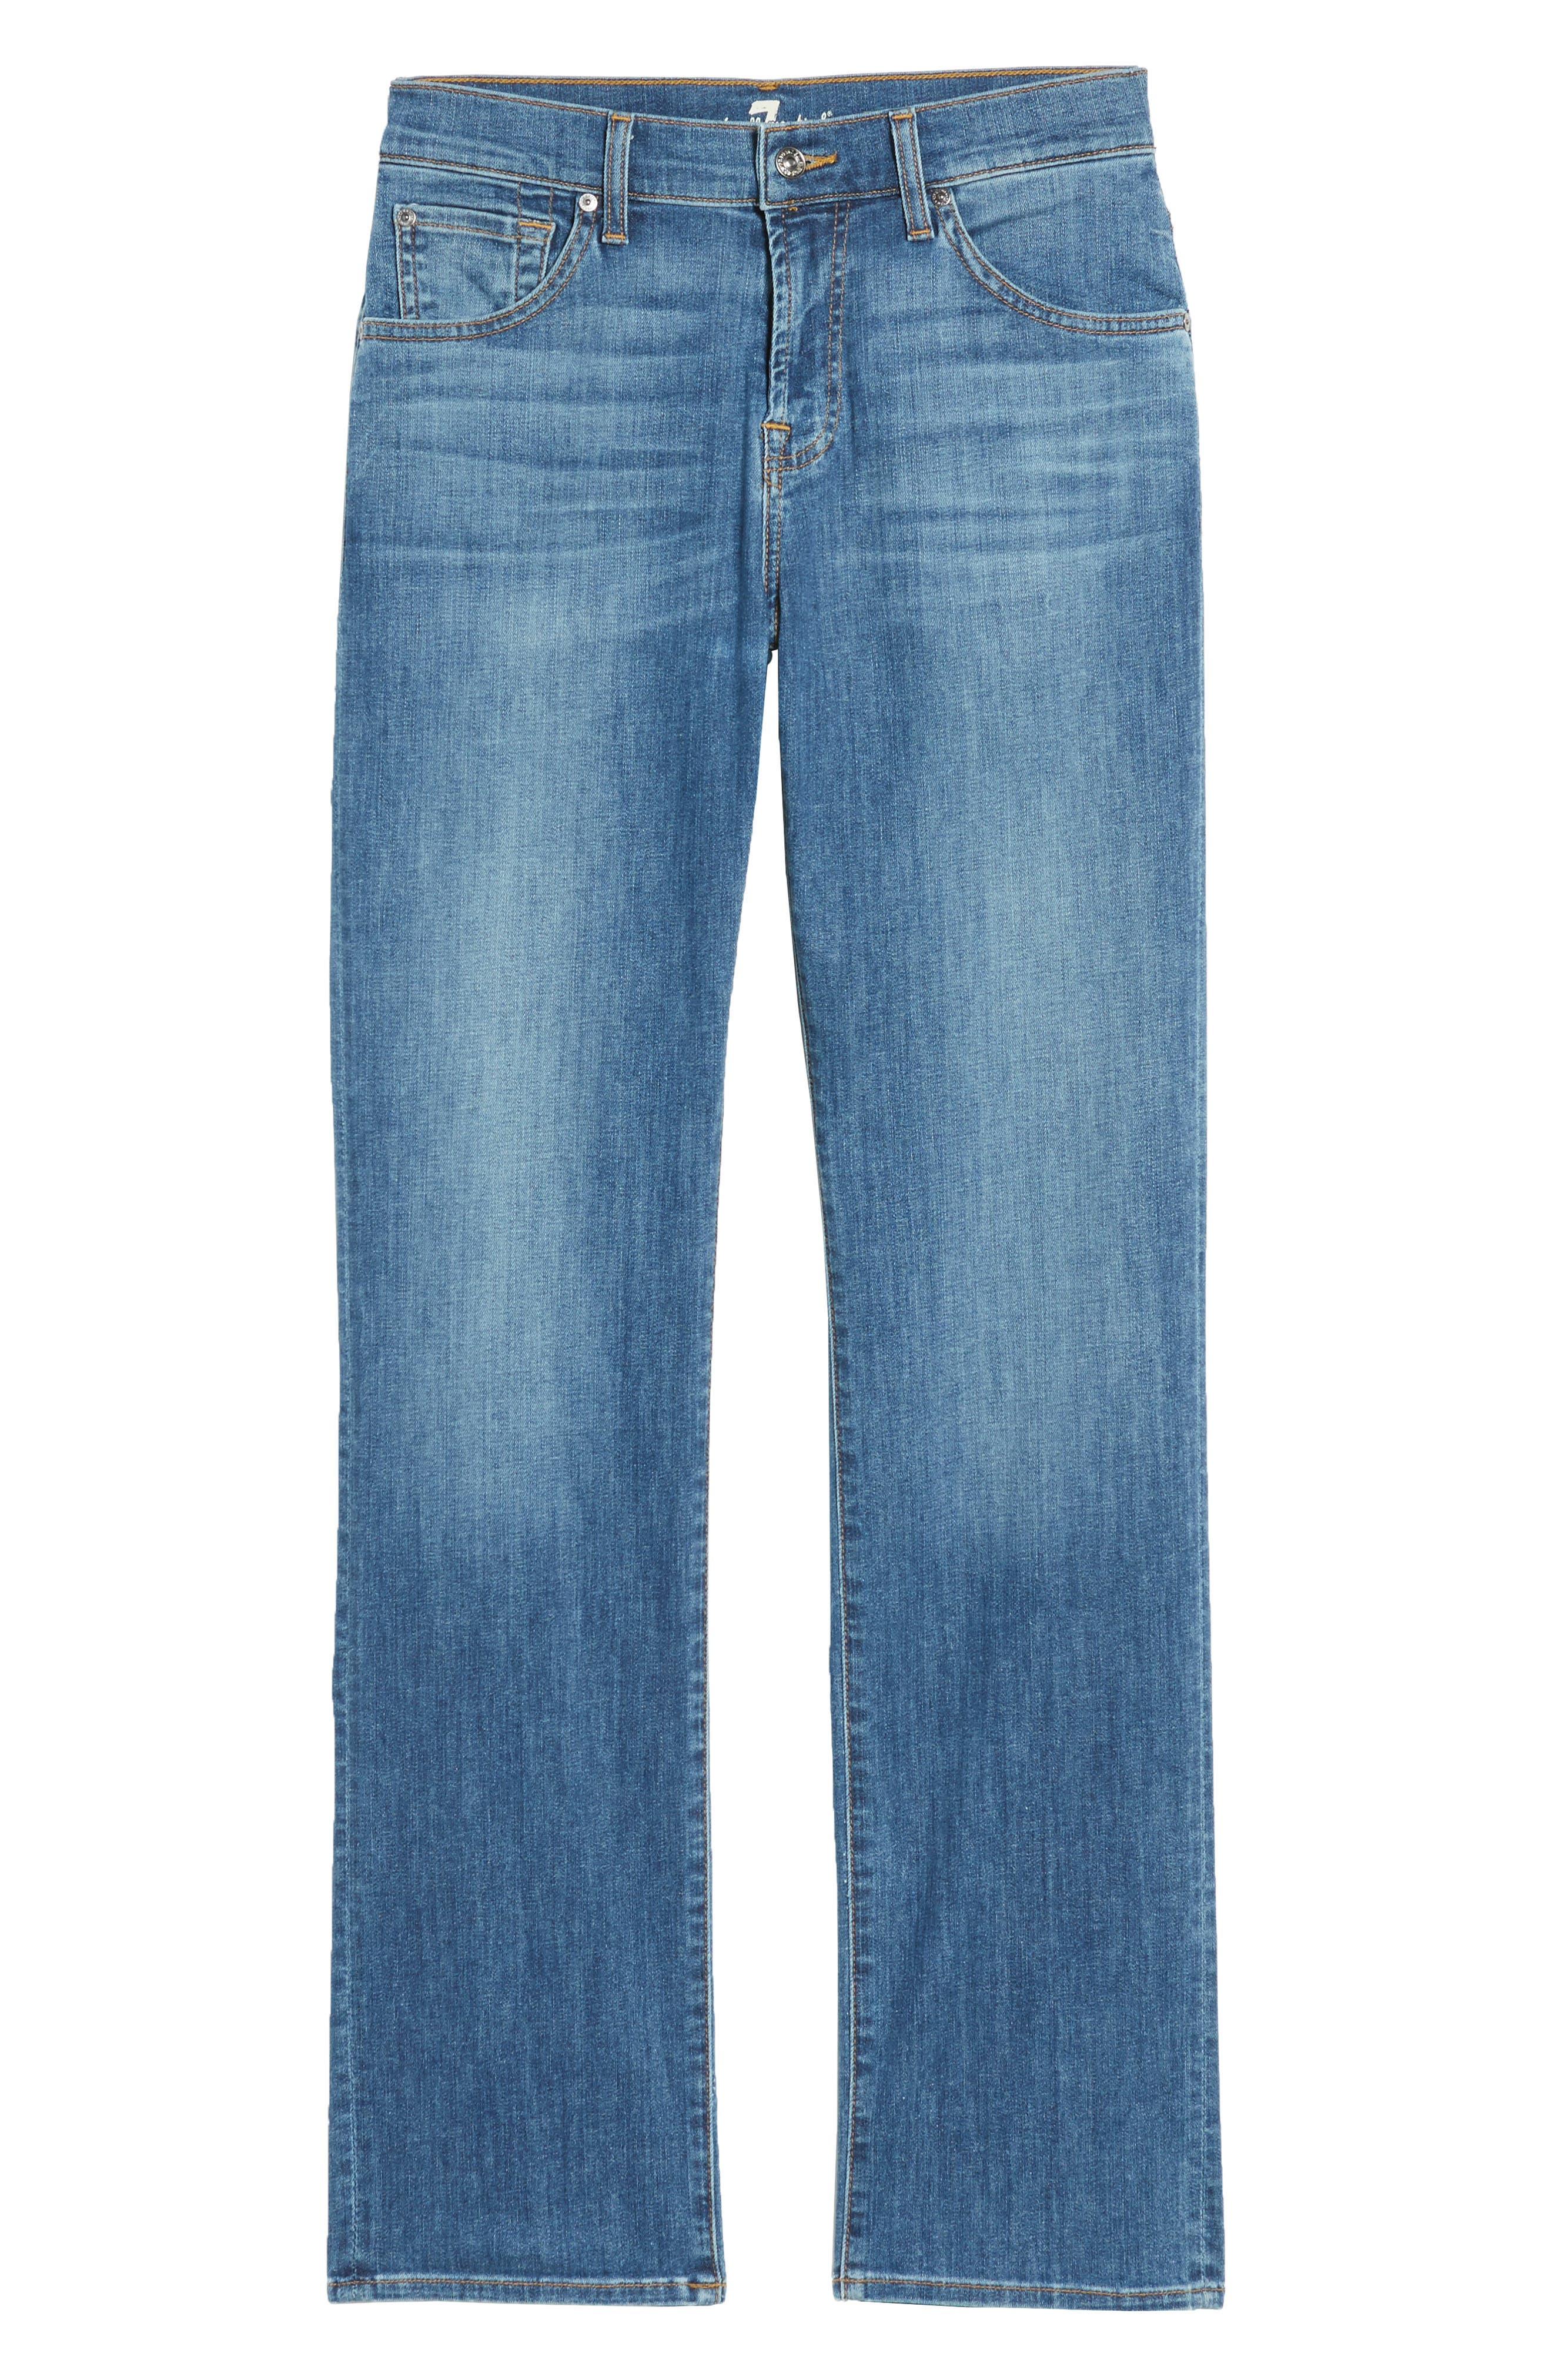 Austyn Relaxed Fit Jeans,                             Alternate thumbnail 6, color,                             Rain Shadow